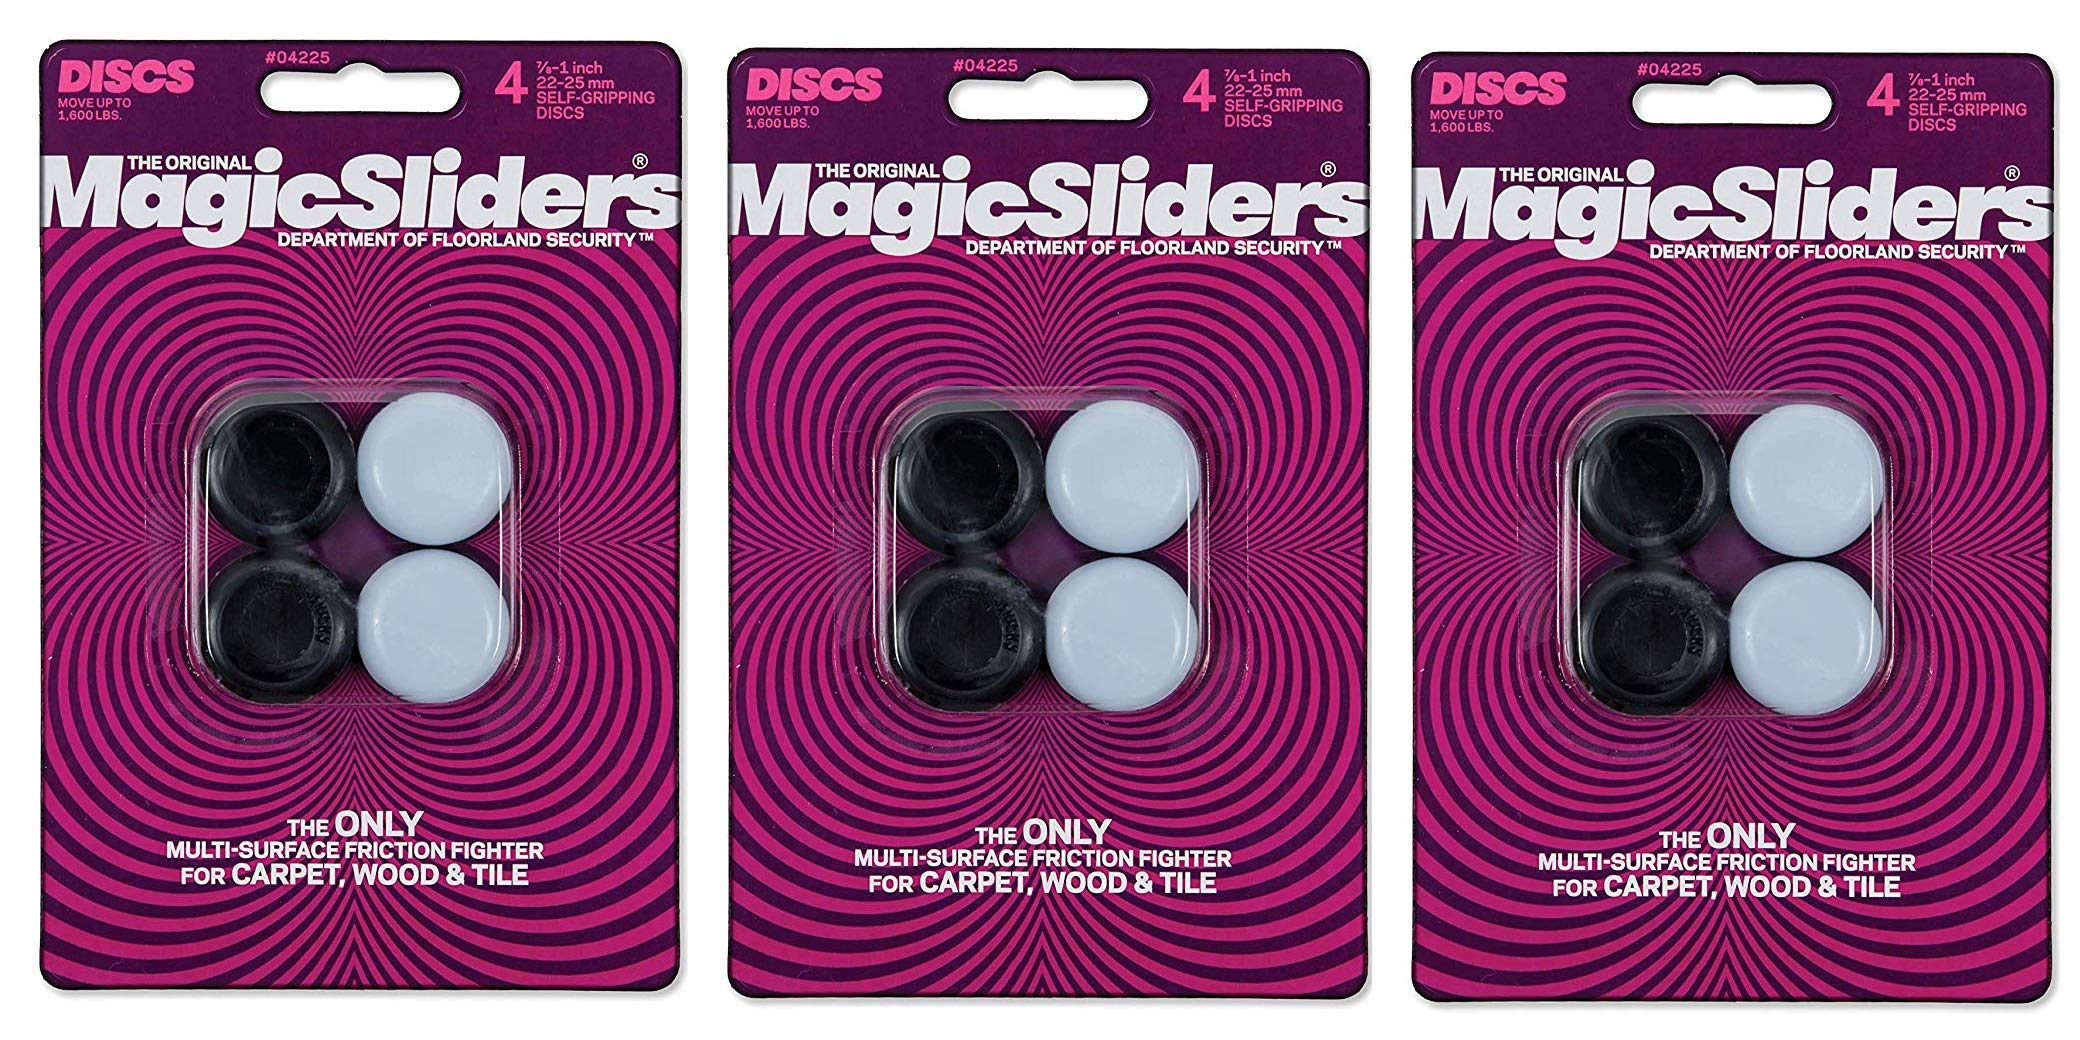 Magic Sliders L P 4225 4 Pack 7/8''-1'' RND Slider (Тhree Pаck)